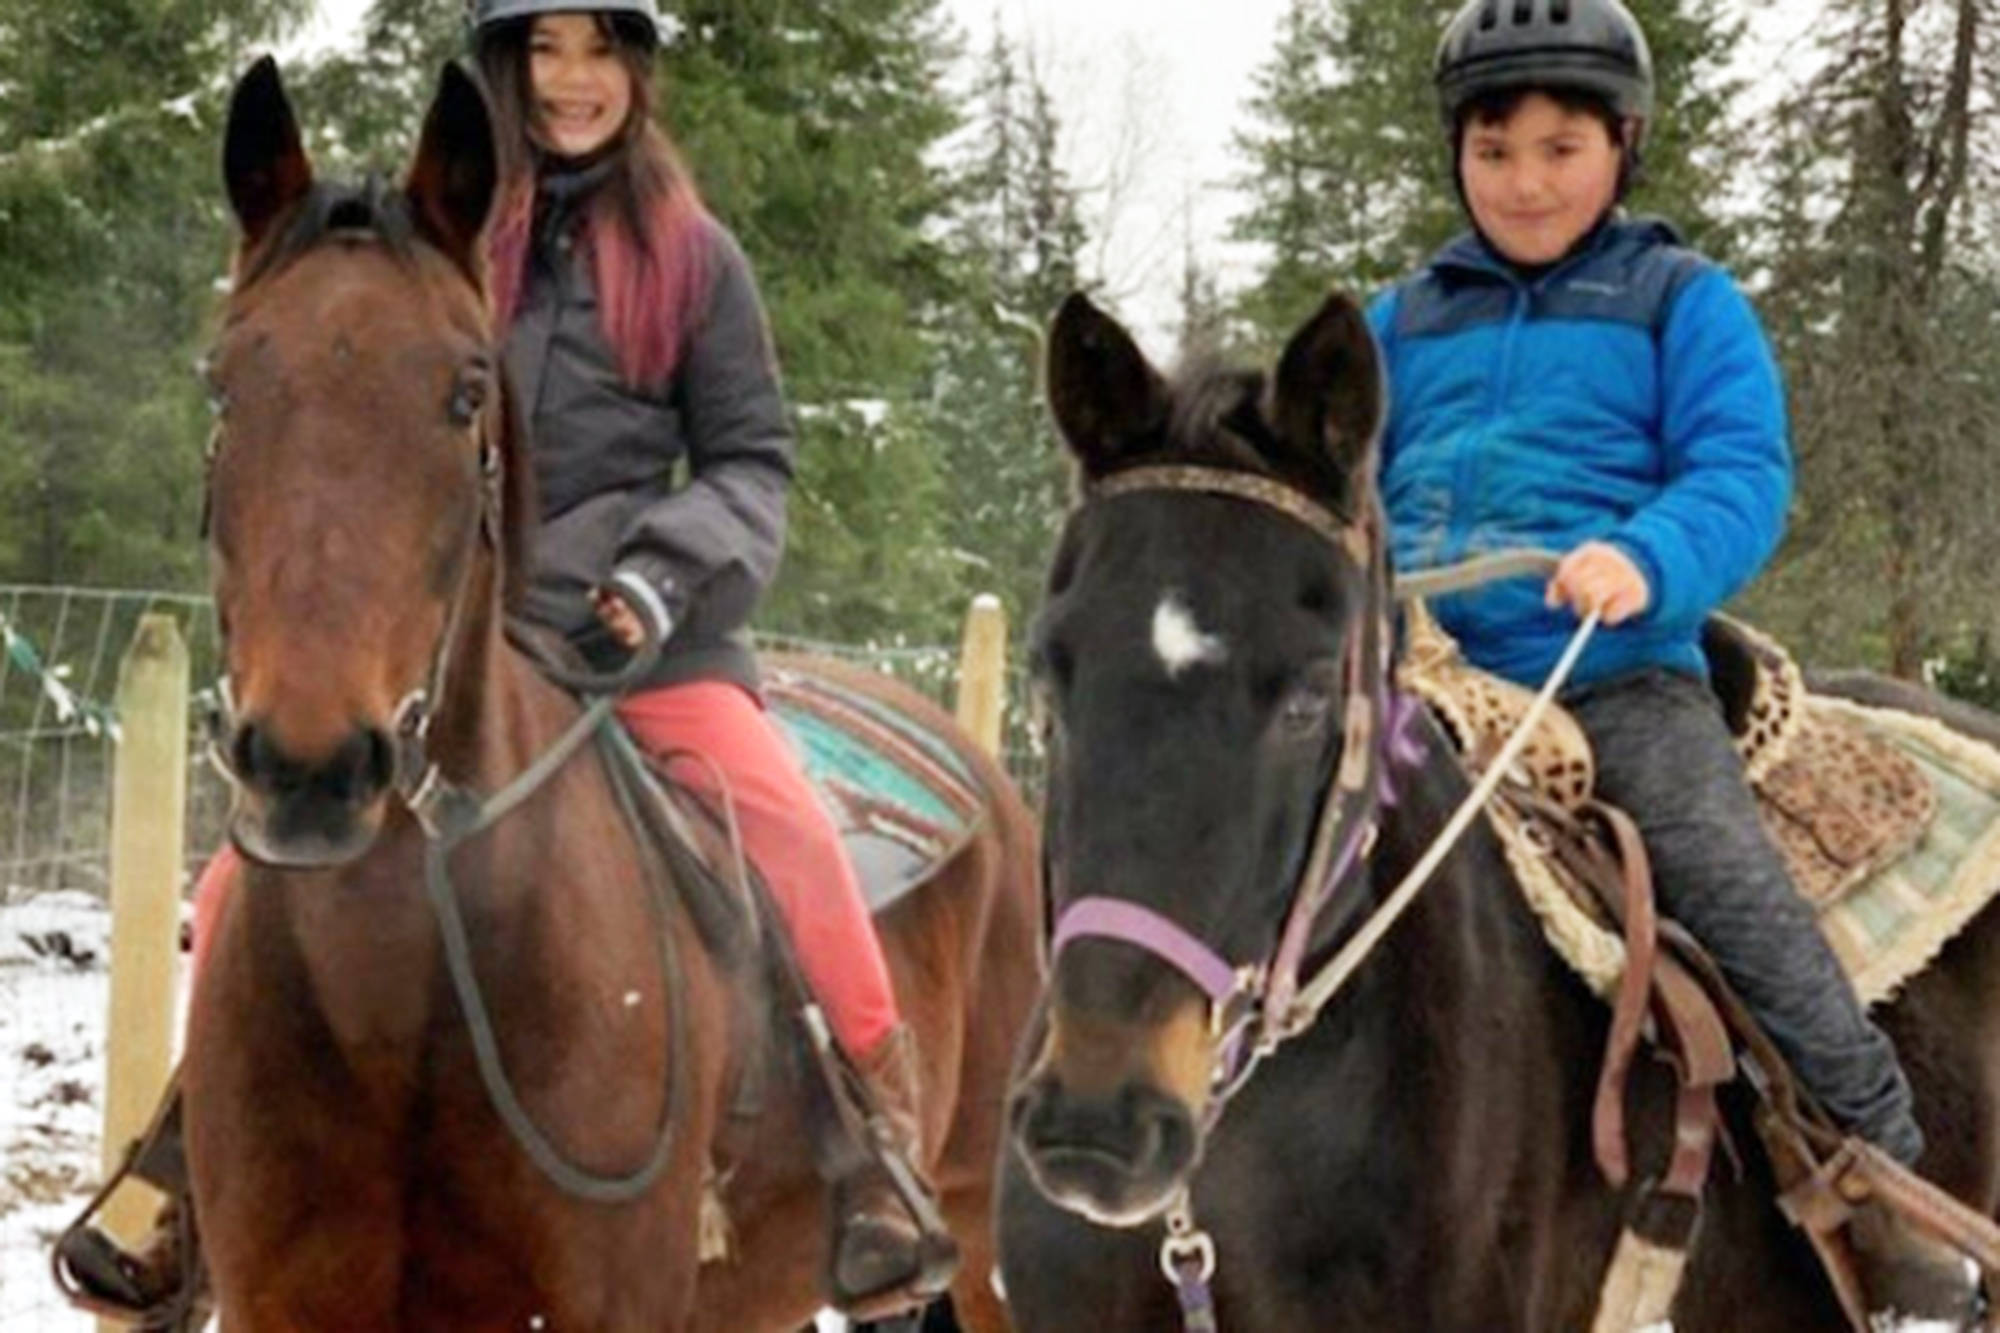 A GoFundMe page was launched for Malakwa's Sabiston family following a barn fire on Feb. 19 that left the family without feed and supplies for their horses. (GoFundMe photo)